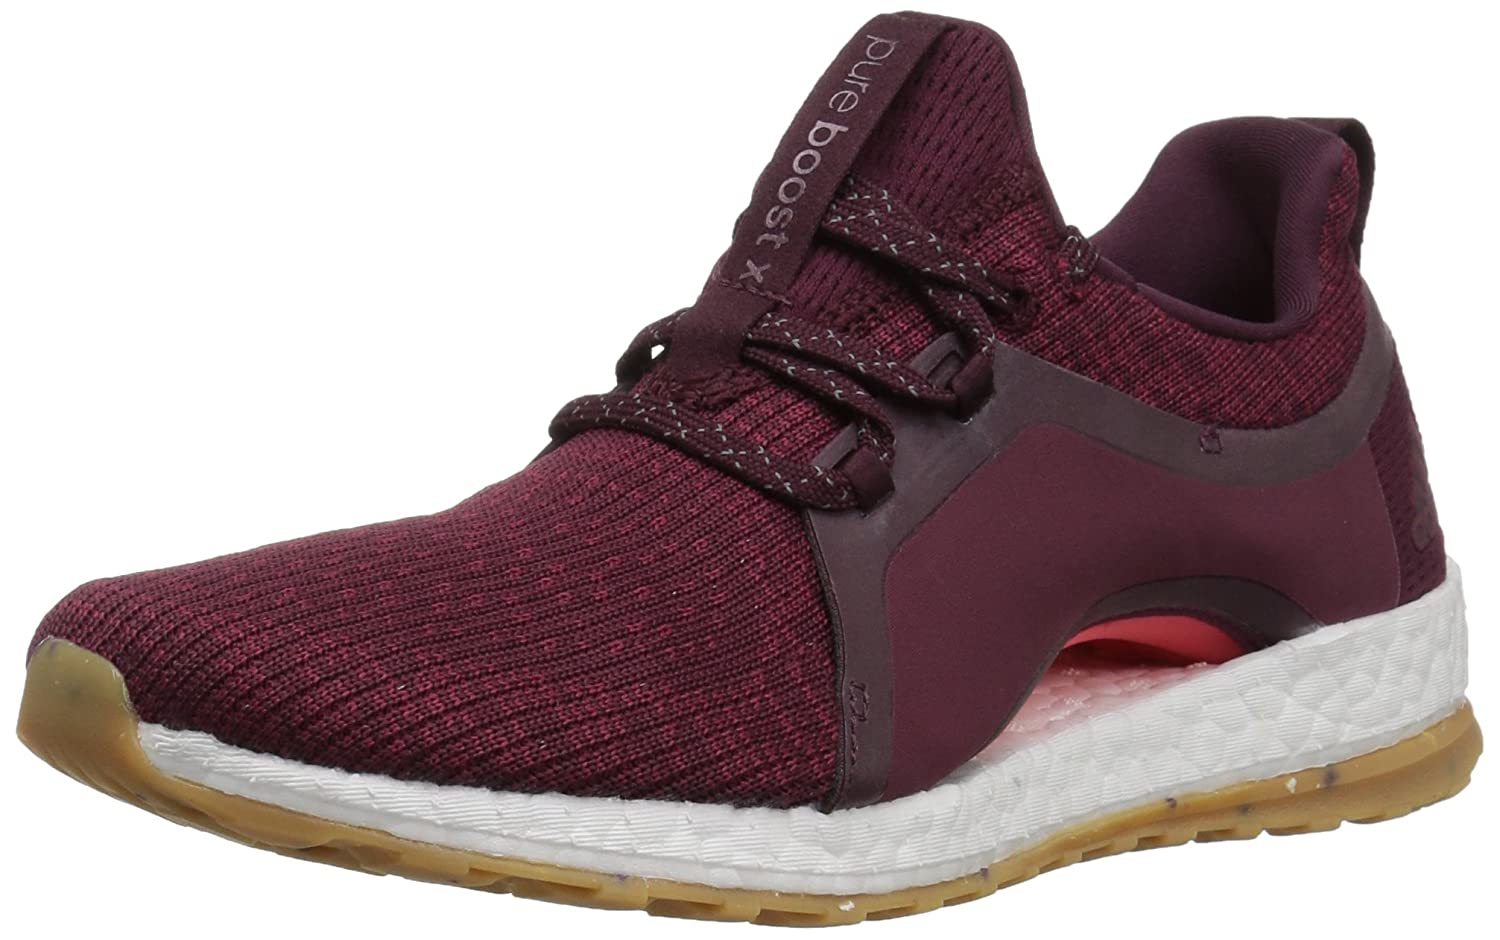 adidas Performance Women's Pureboost X ATR Running Shoe B06XWM3ZKG 7 B(M) US|Red Night/Mystery Ruby/Easy Coral